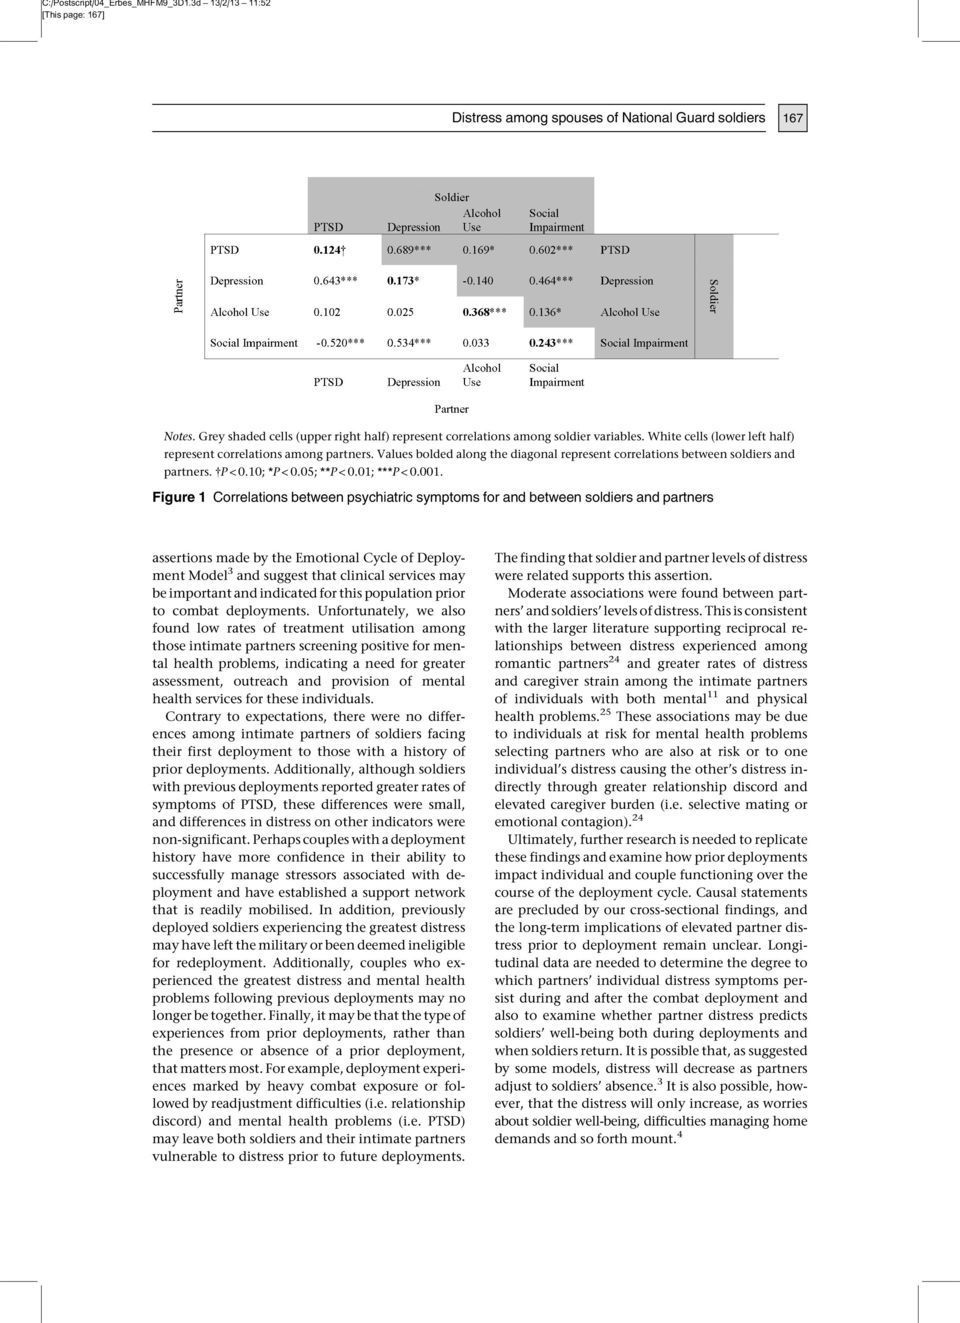 001. Figure 1 Correlations between psychiatric symptoms for and between soldiers and partners assertions made by the Emotional Cycle of Deployment Model 3 and suggest that clinical services may be